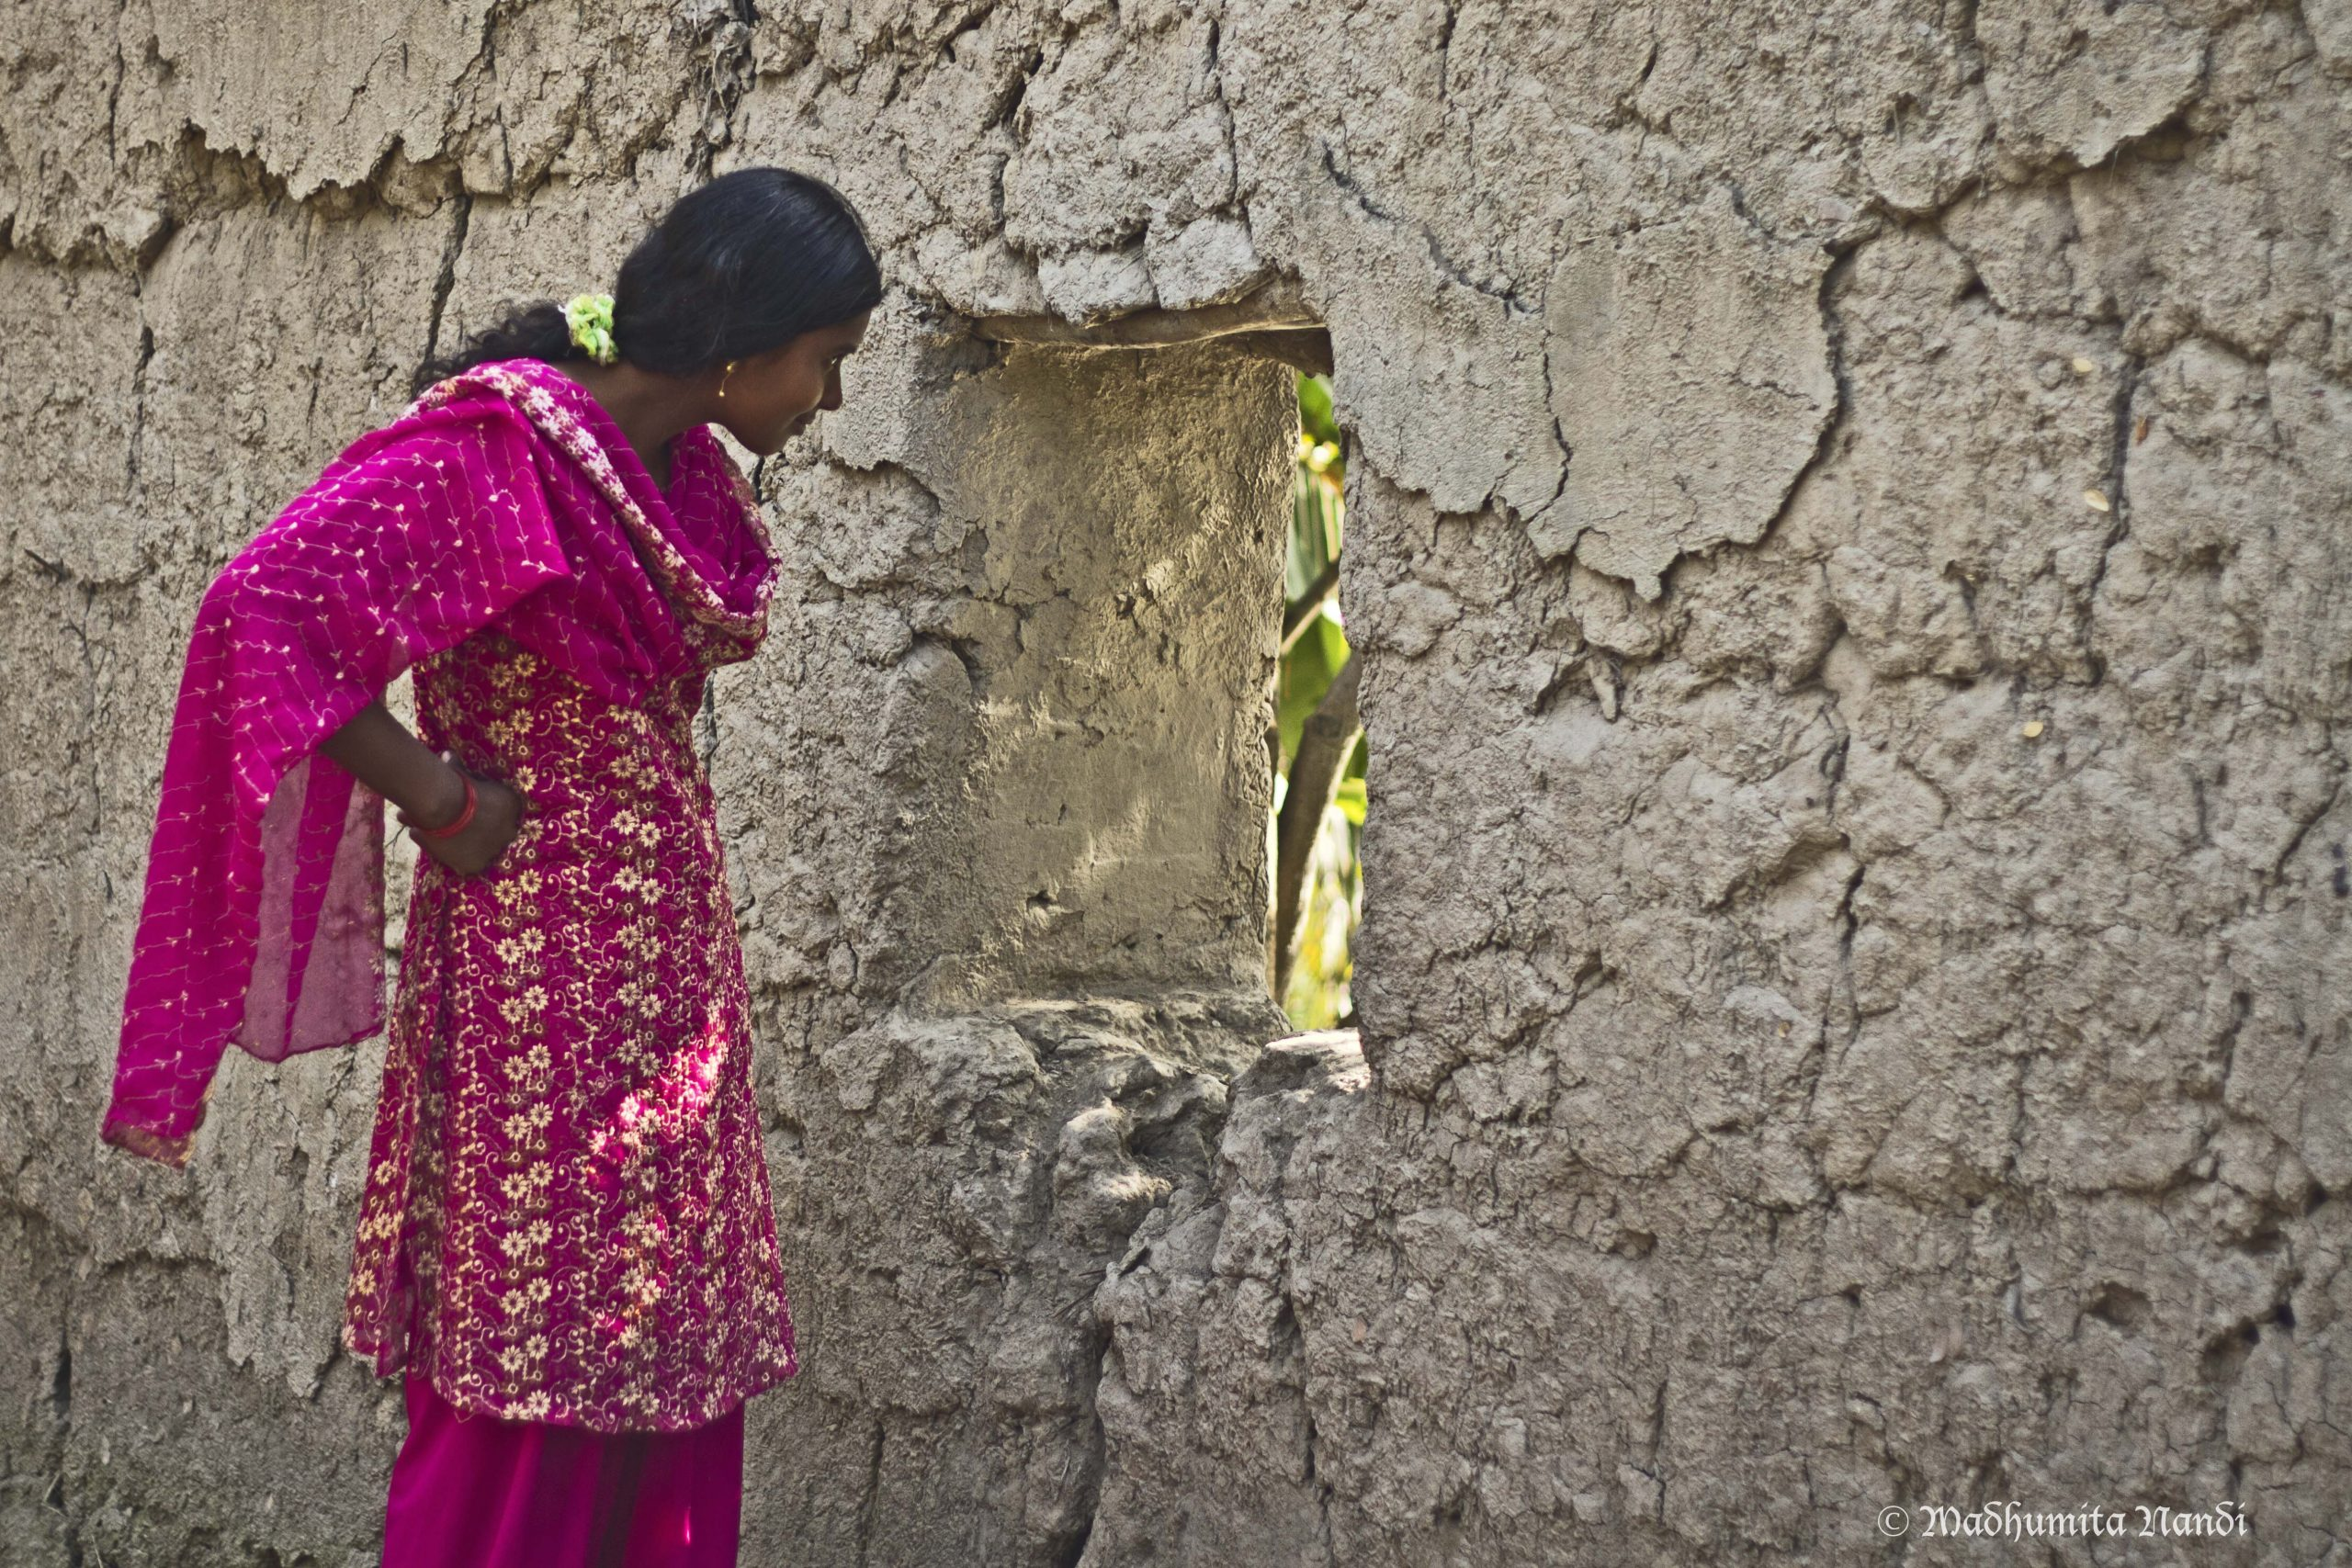 An Indian woman looking outside a window in a wall